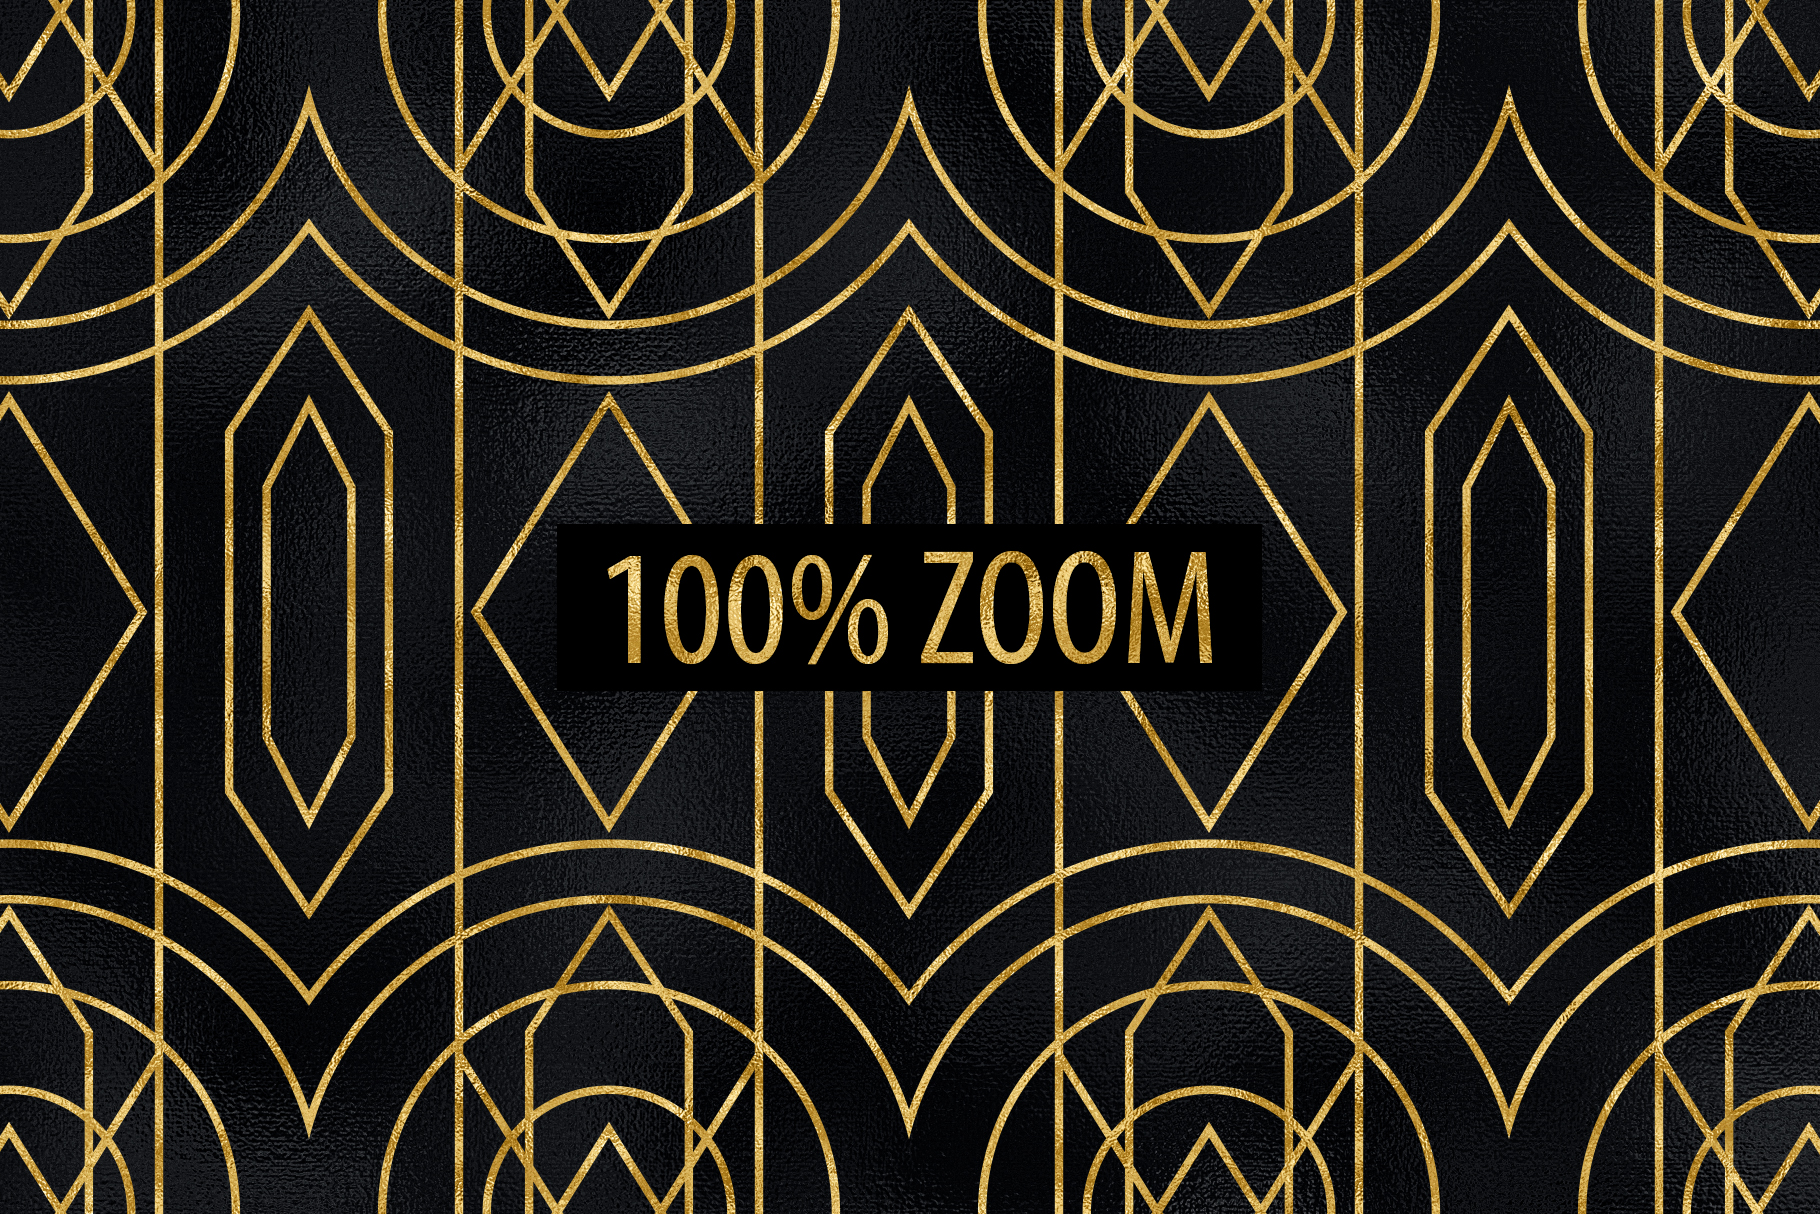 Geometric Art Deco Patterns - 20 Seamless Vector Patterns example image 3